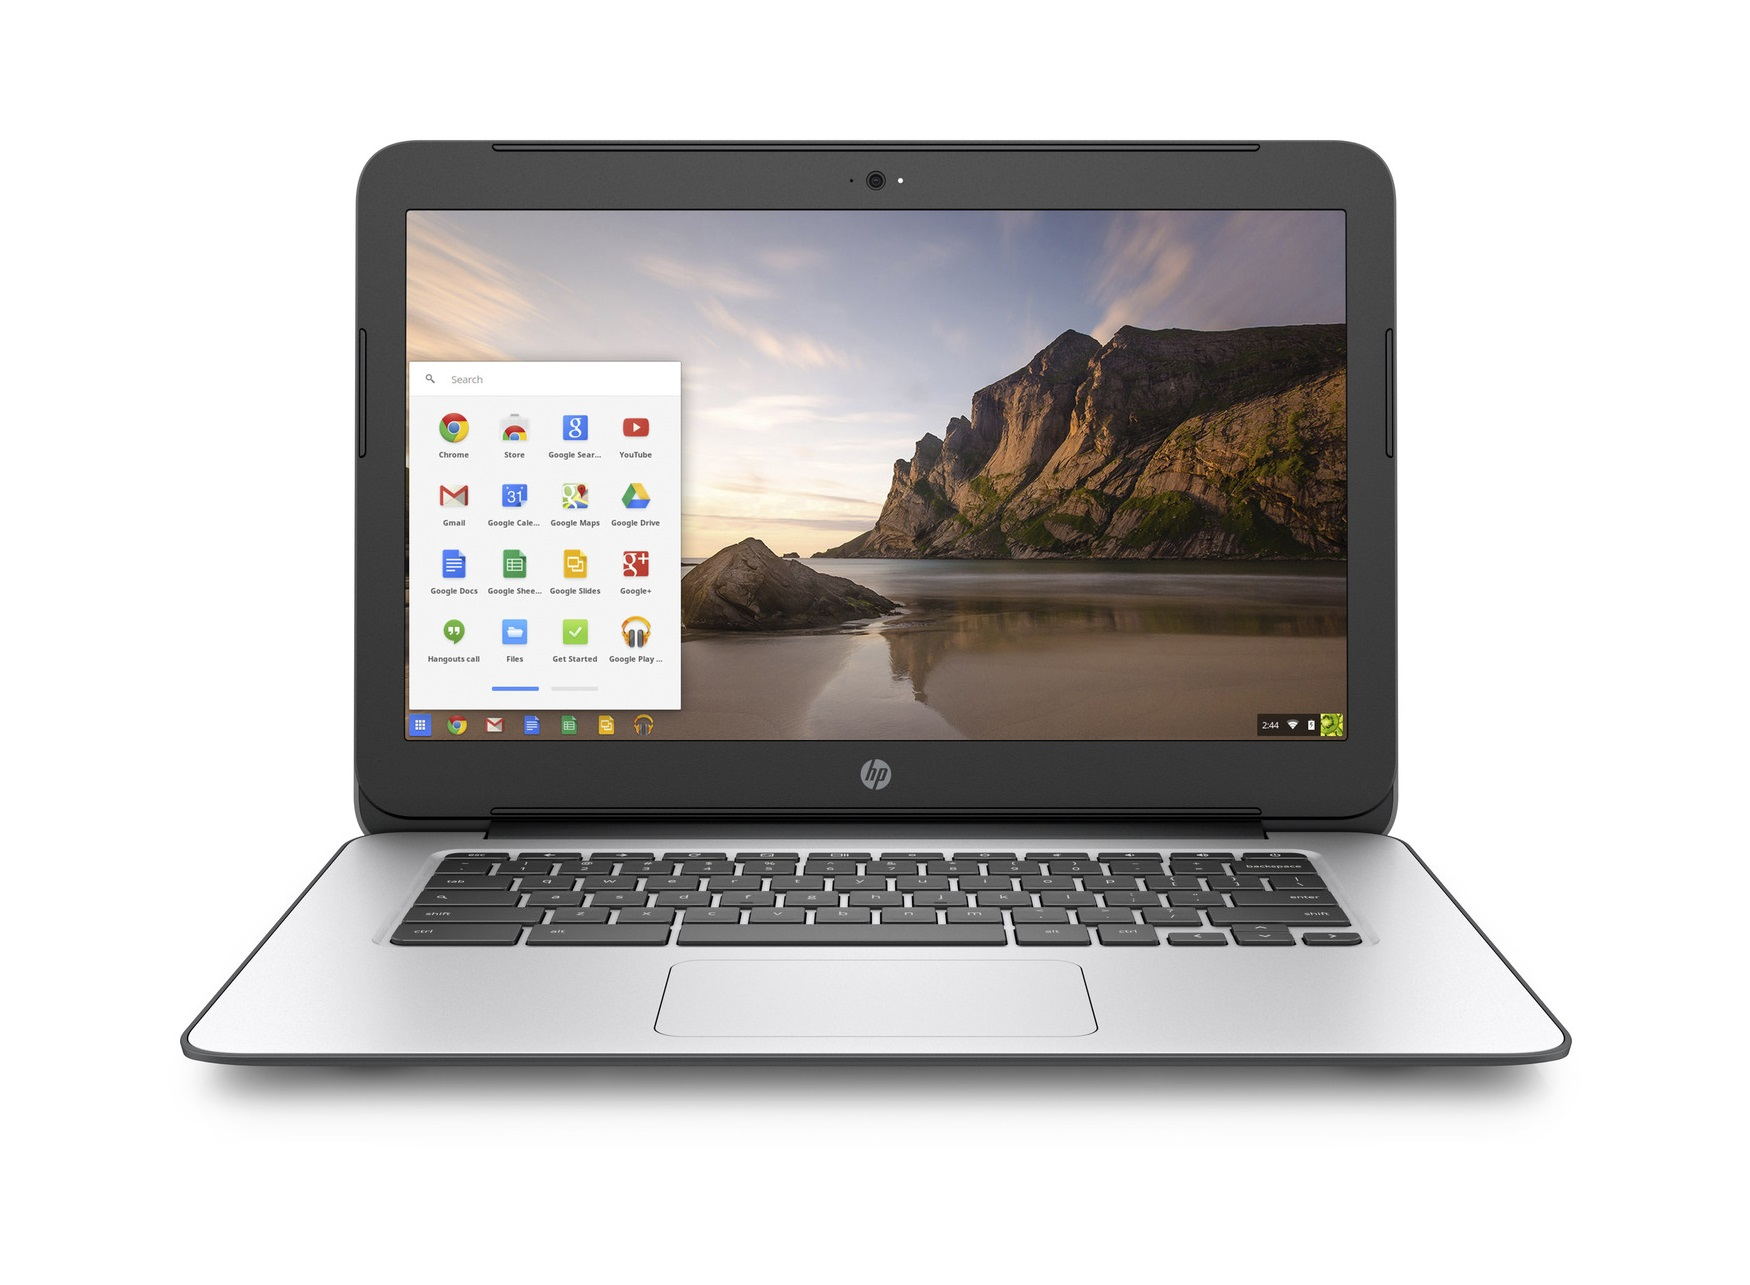 This is the new Acer Chromebook 11